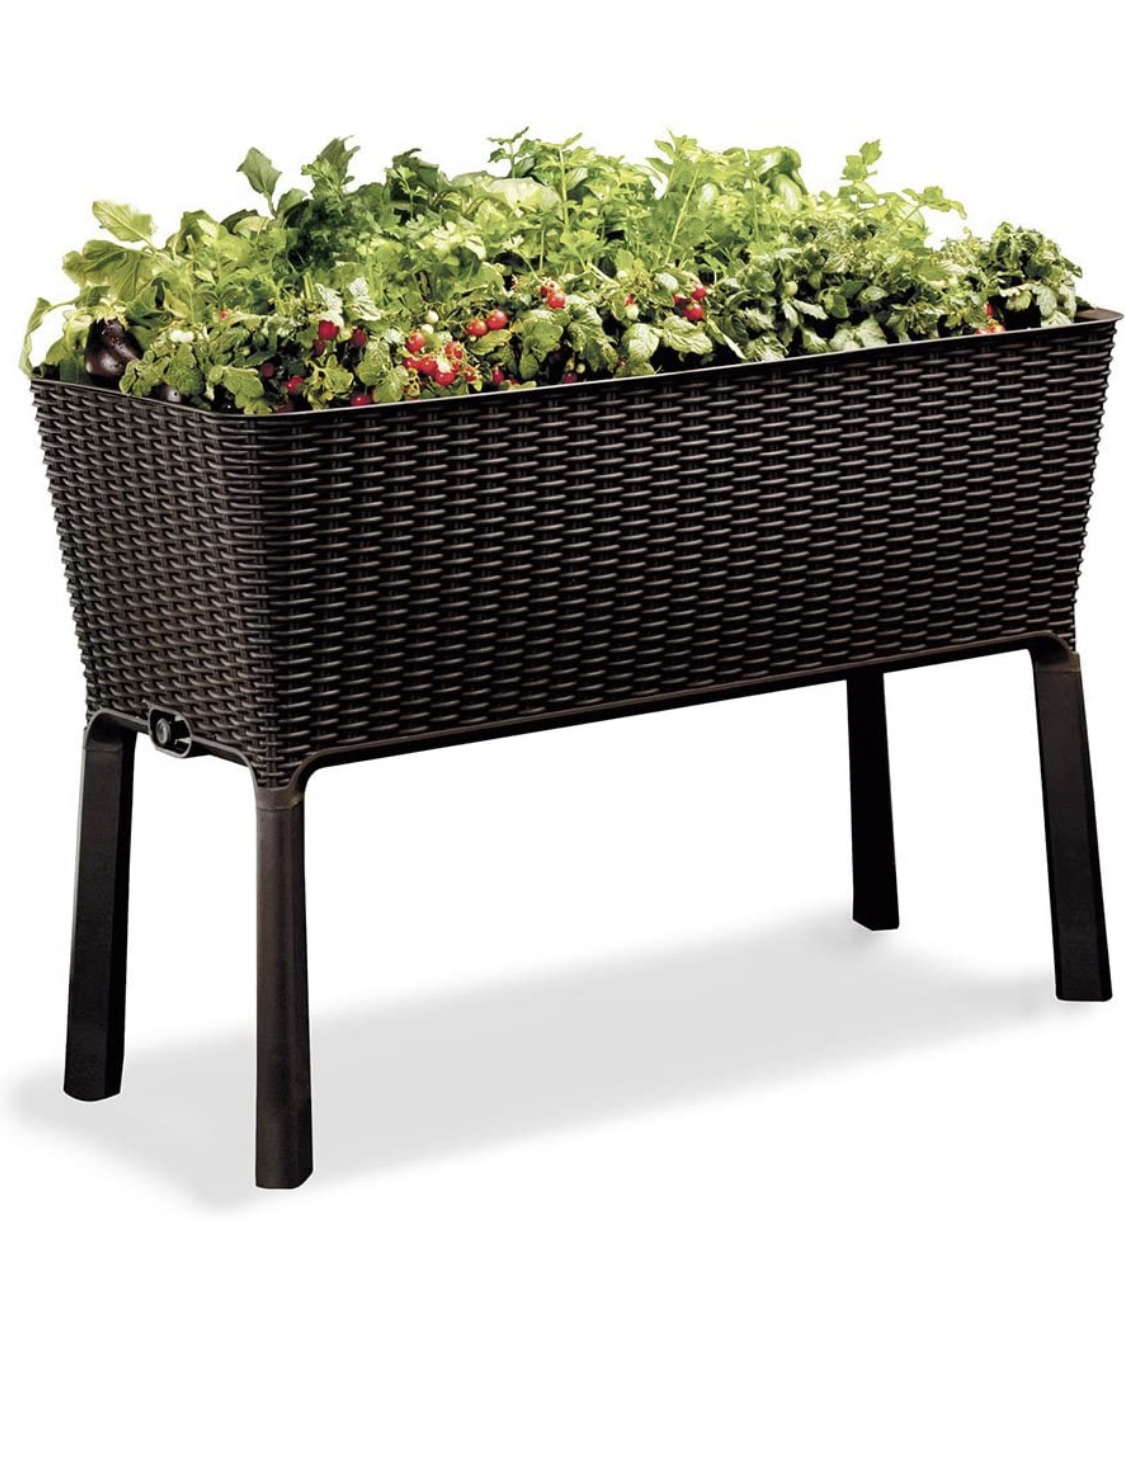 Raised Wicker Garden Bed